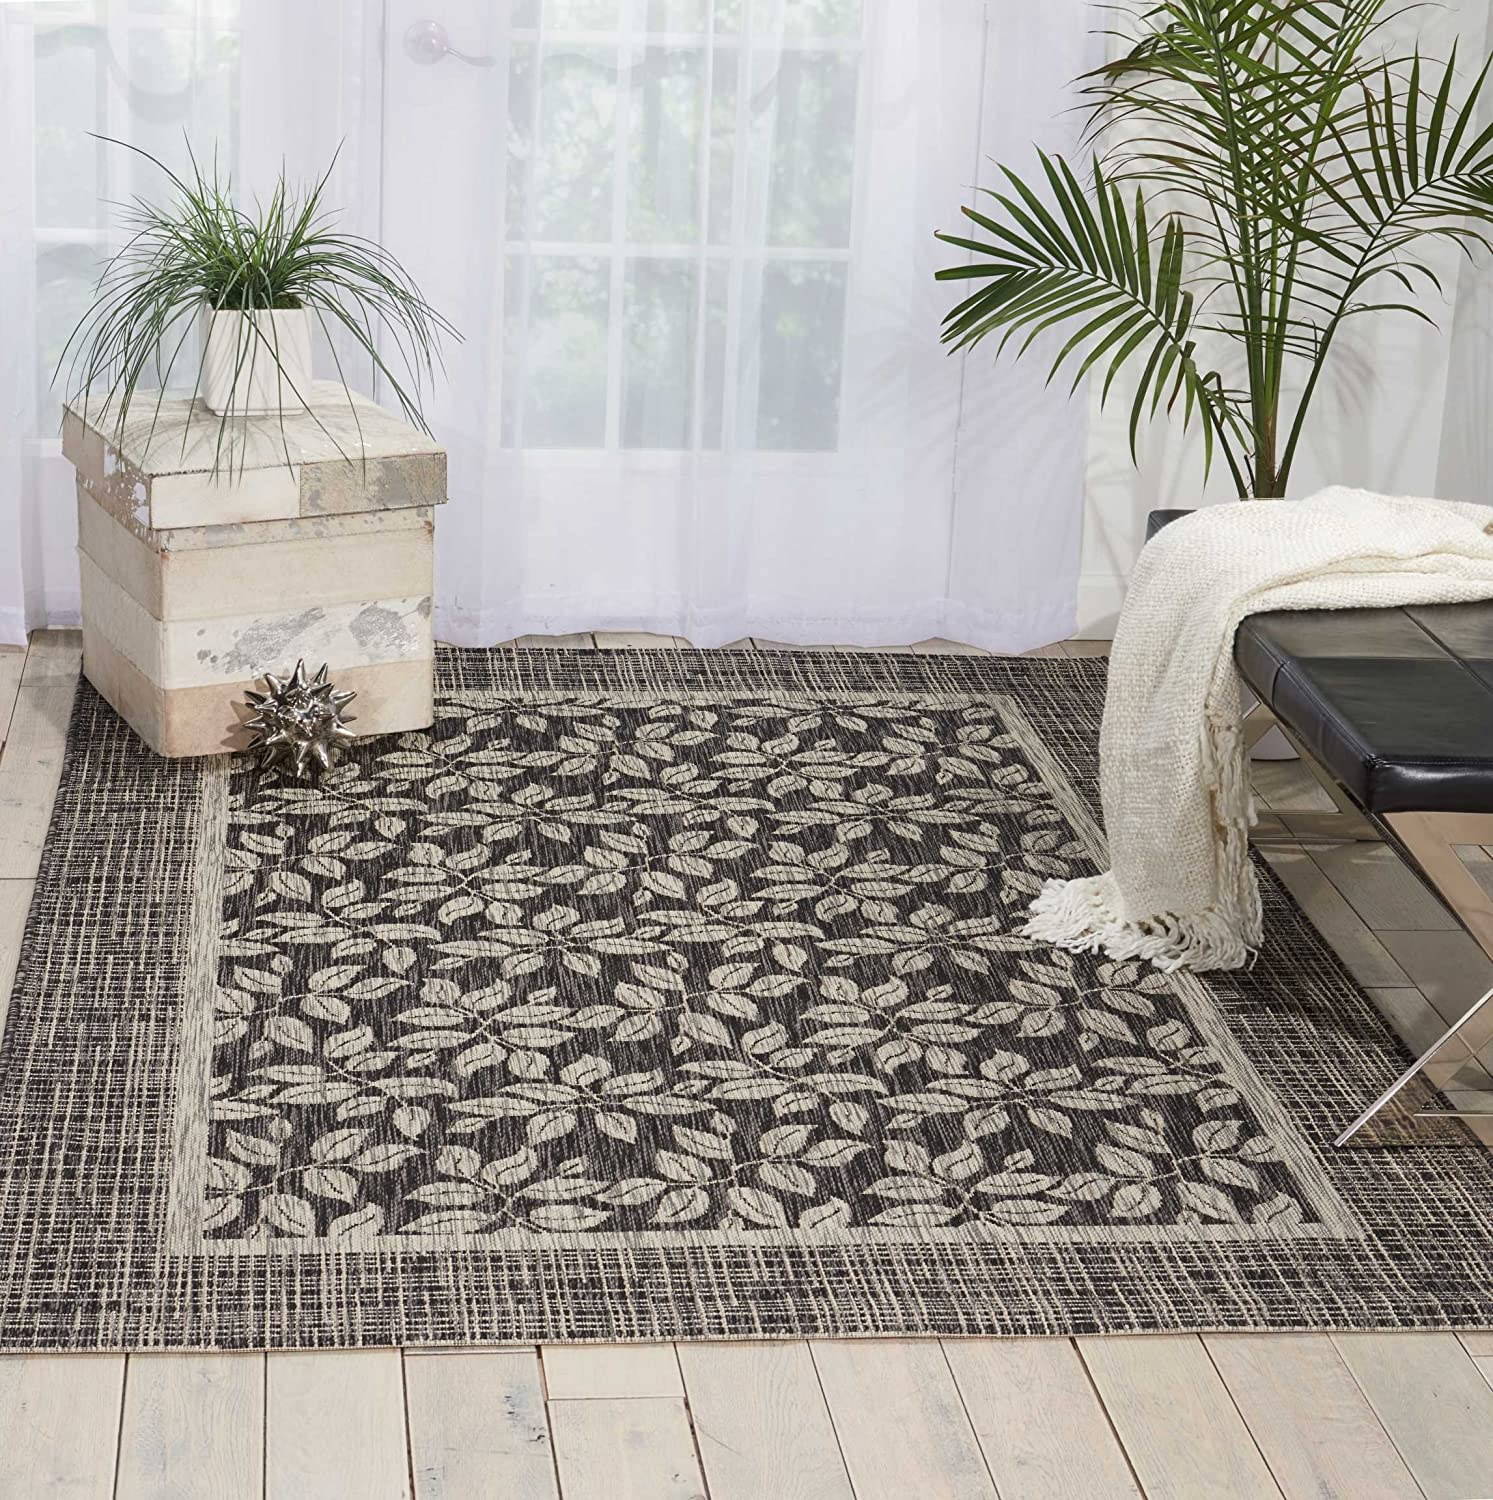 Nourison Garden Party Charcoal Indoor/Outdoor Area Rug 7 Feet 10 Inches by 10 Feet 6 Inches, 7'10